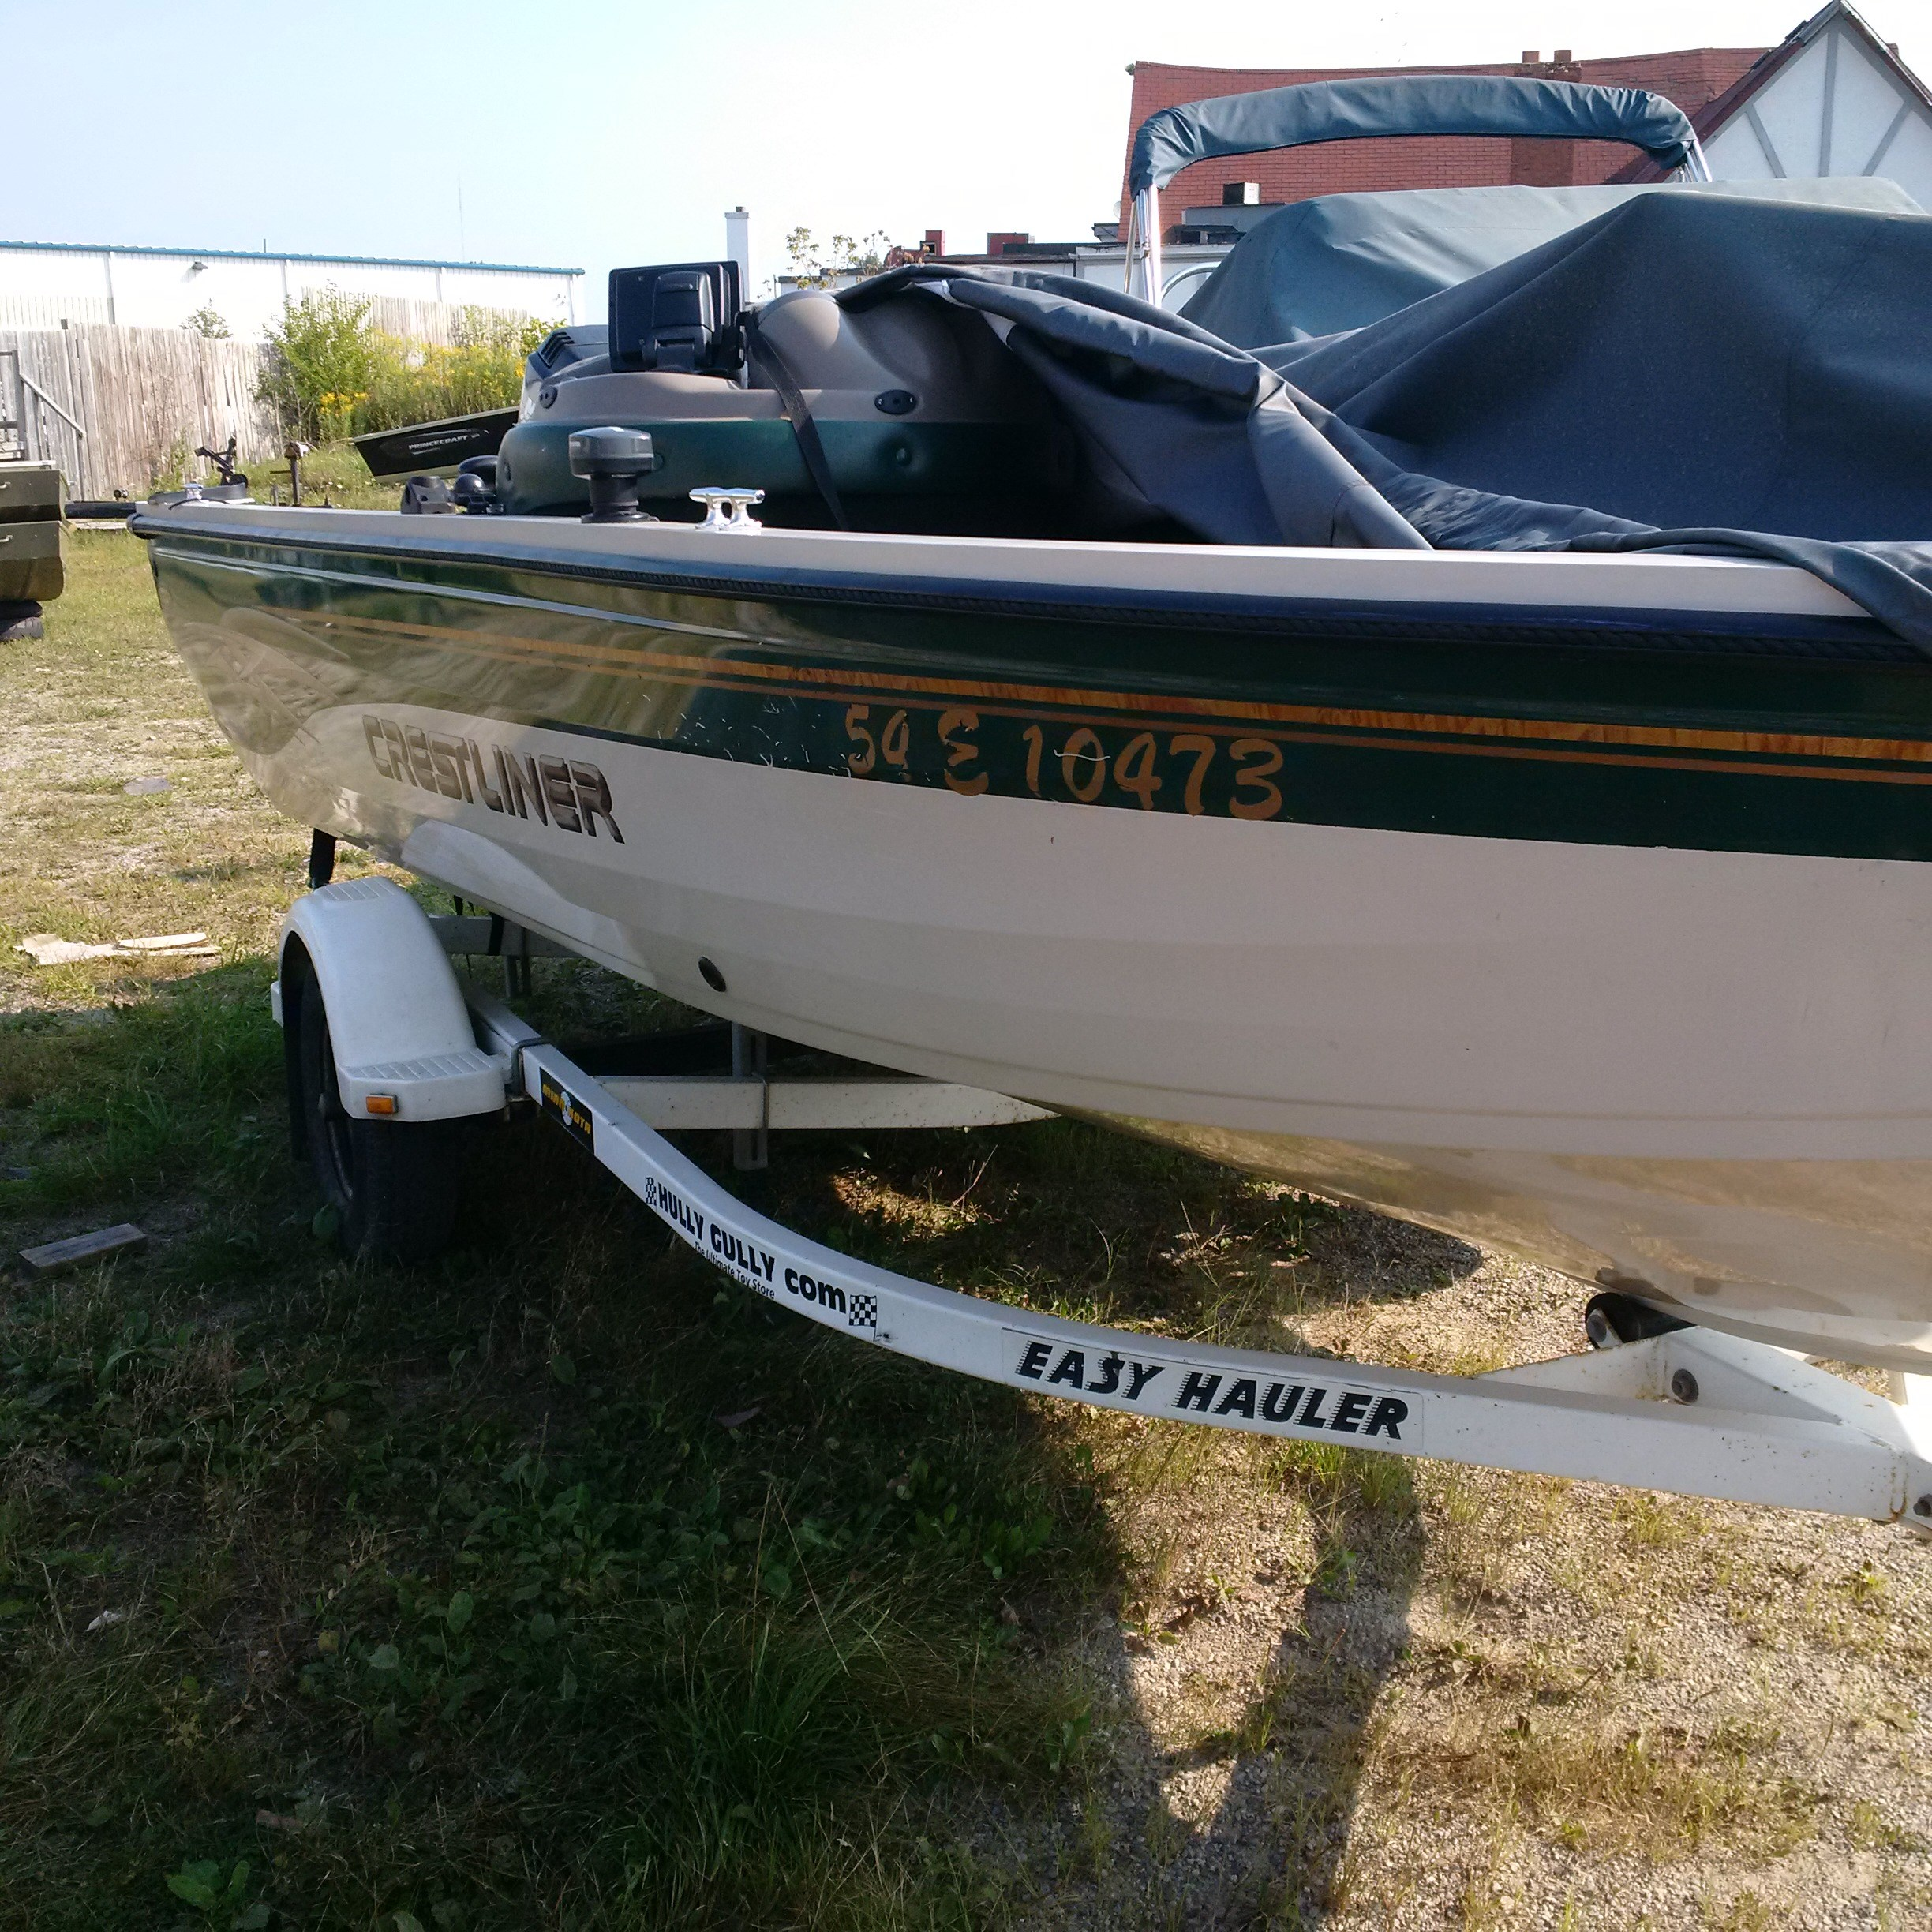 Crestliner 1750 fish hawk 2001 used boat for sale in for Crestliner fish hawk